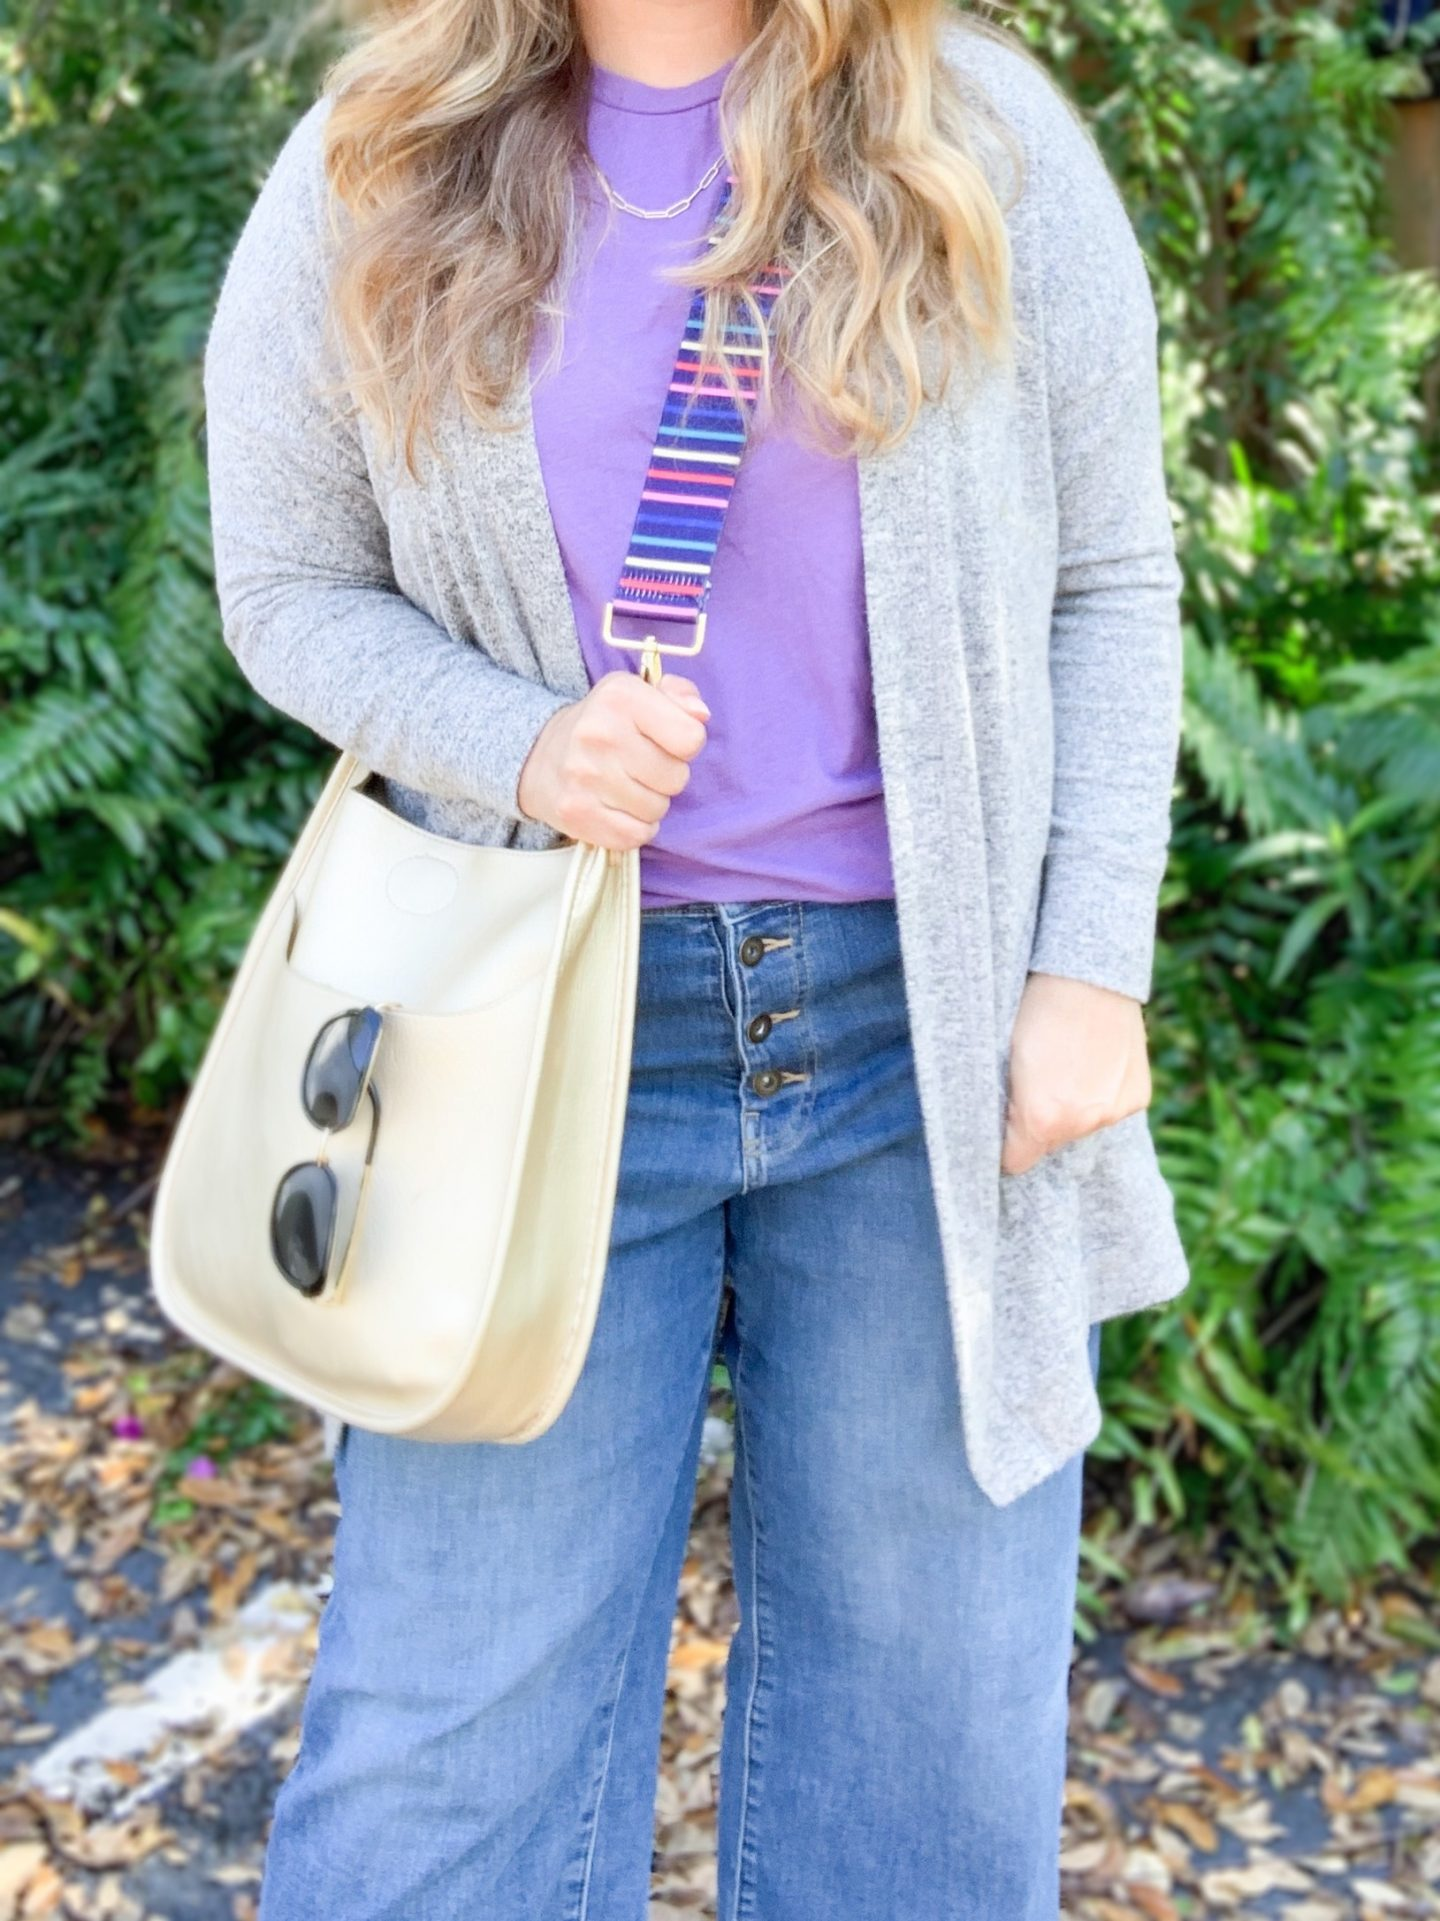 Four chic and effortless ways to wear wide leg jeans. See how to style wide leg jeans into outfits that are on trend and make an impact. Long cardigan, t-shirt, and crossbody social threads vegan messenger bag spring outfit.